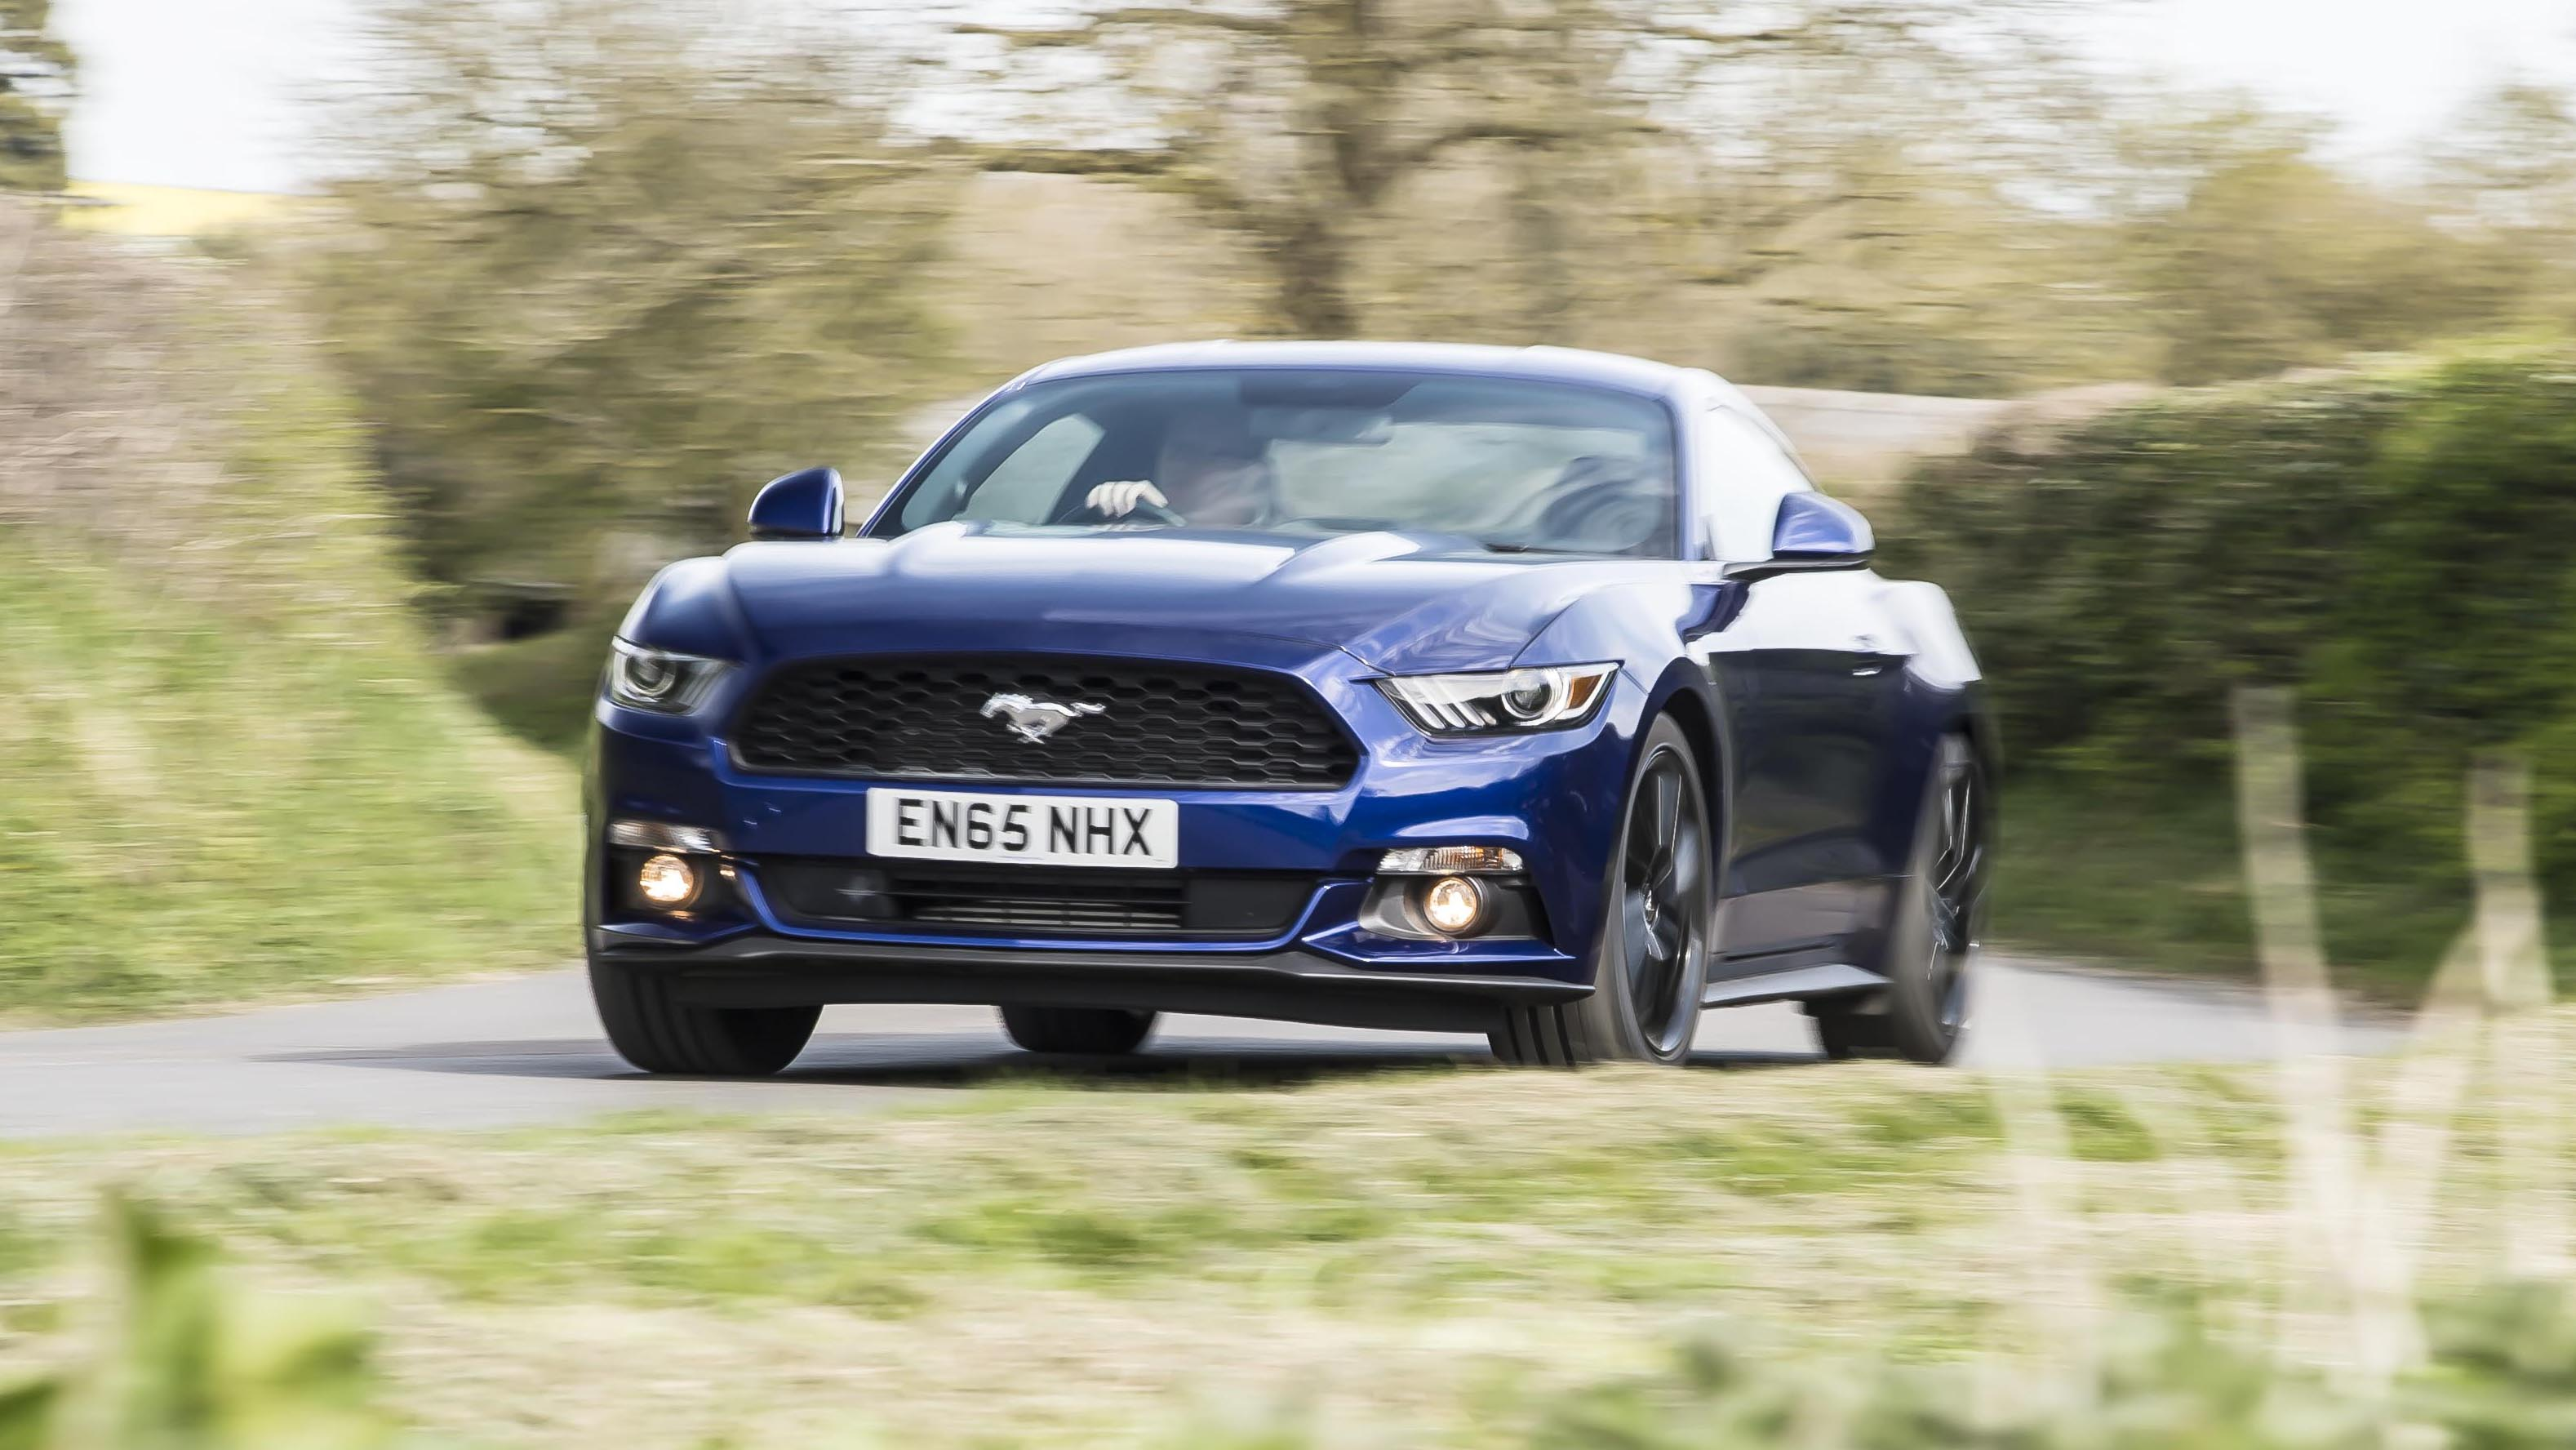 Review: the four-cylinder Ford Mustang Ecoboost (2015-2017) | Top Gear